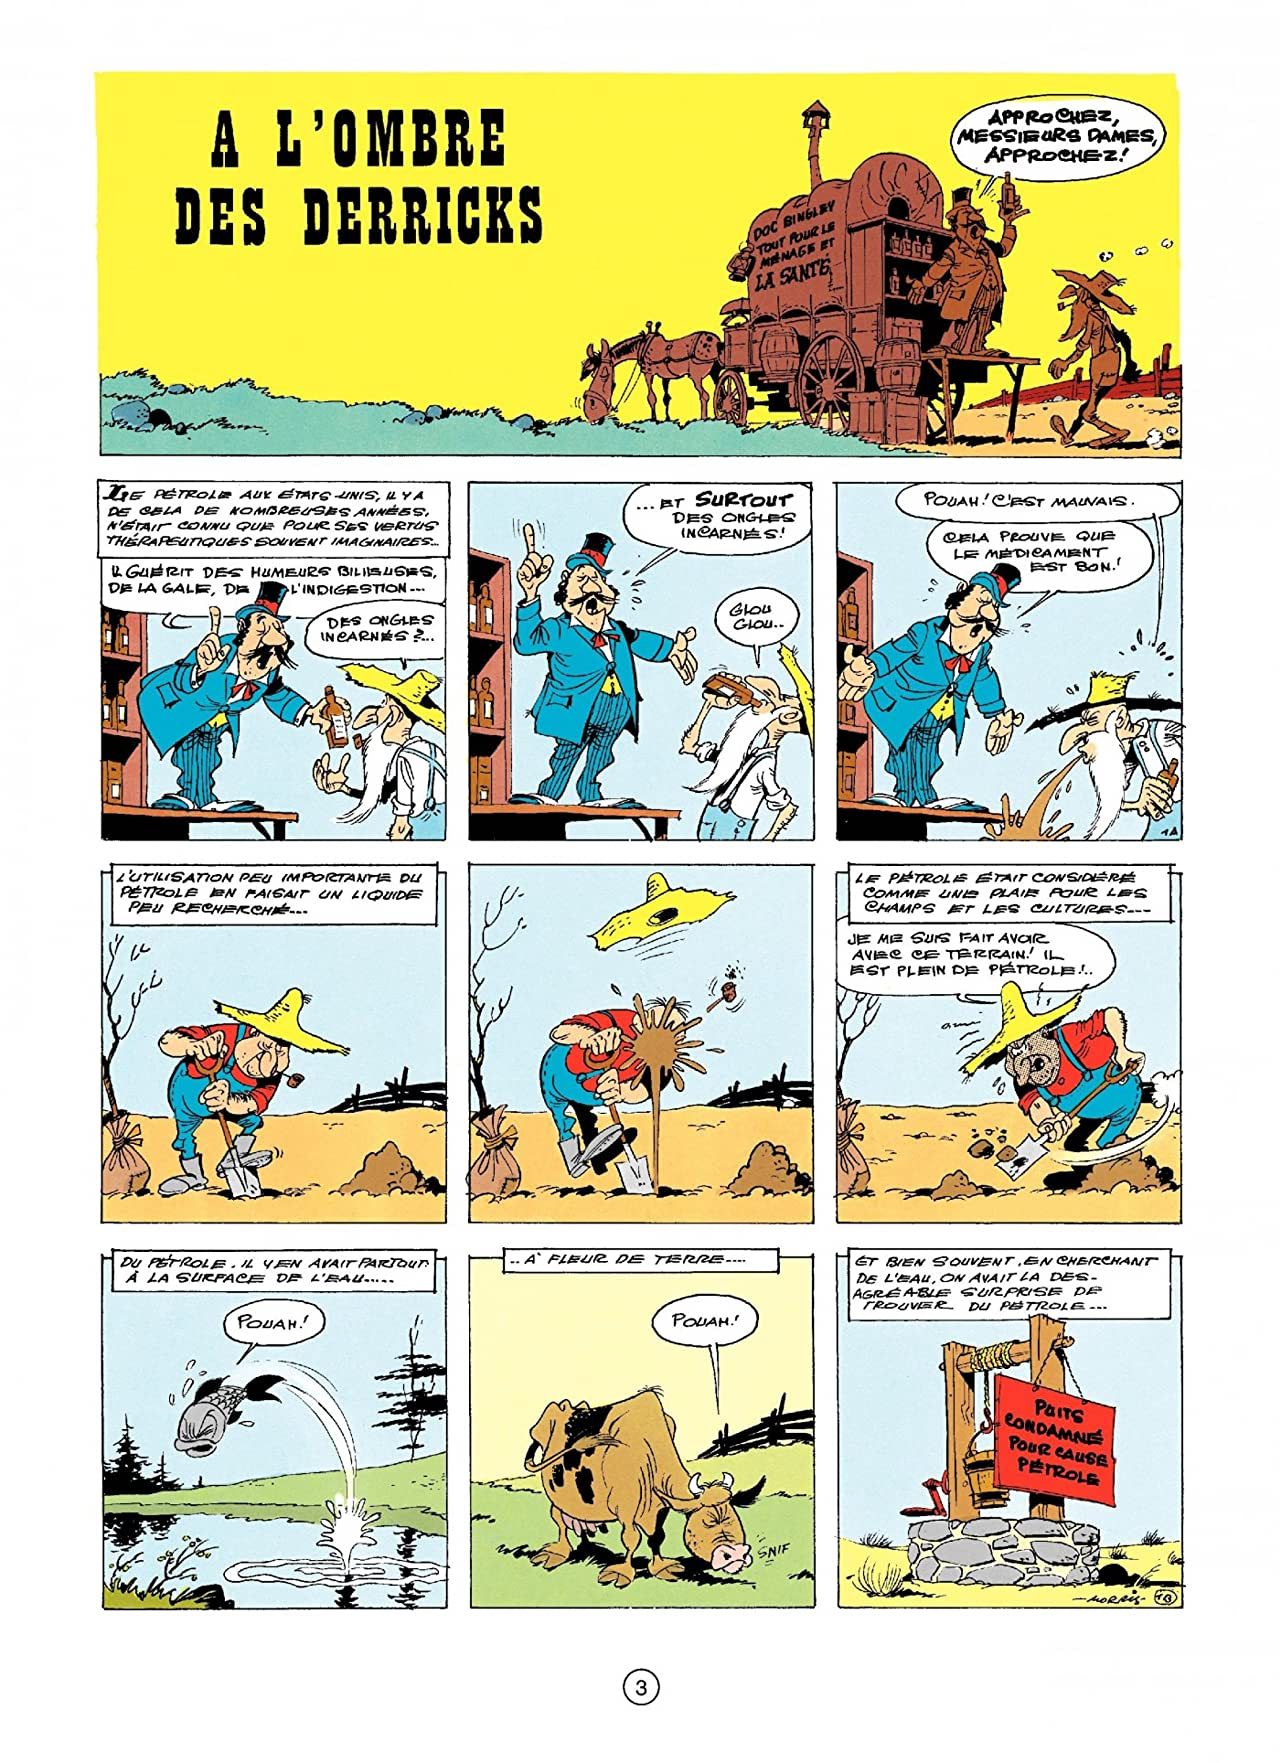 Lucky Luke Vol. 18: A L'OMBRE DES DERRICKS